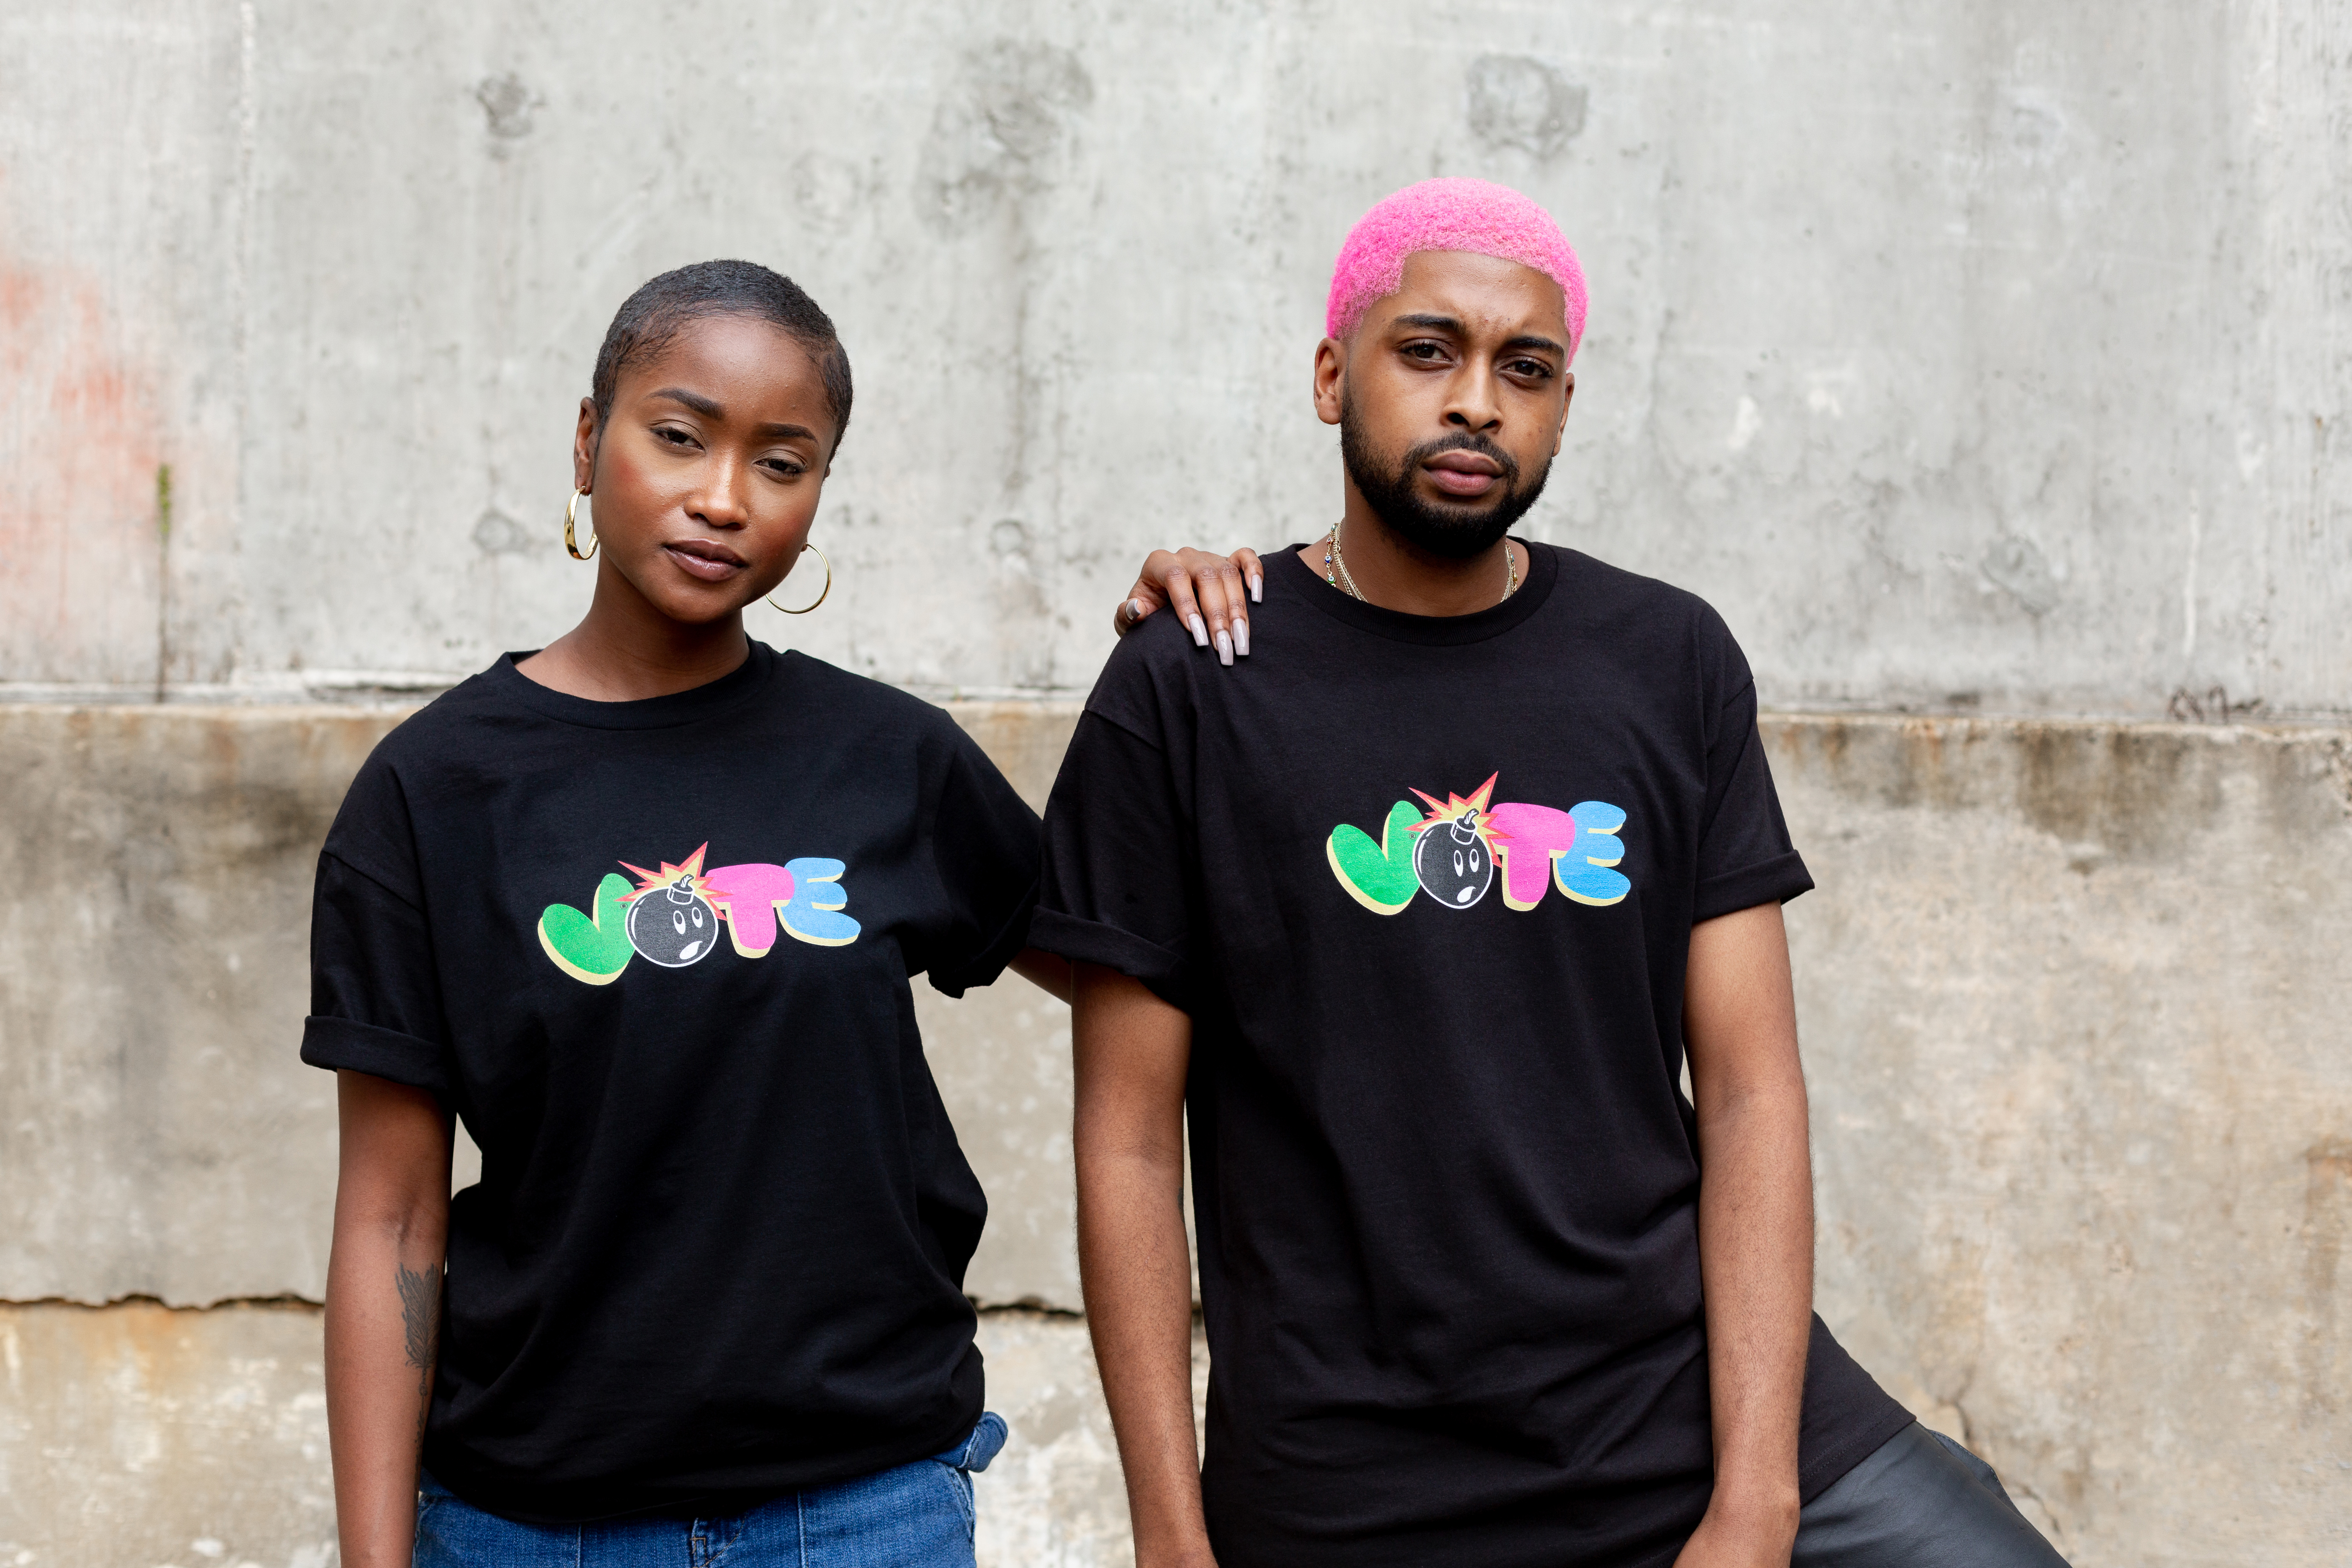 The Hundreds Vote T-shirts.